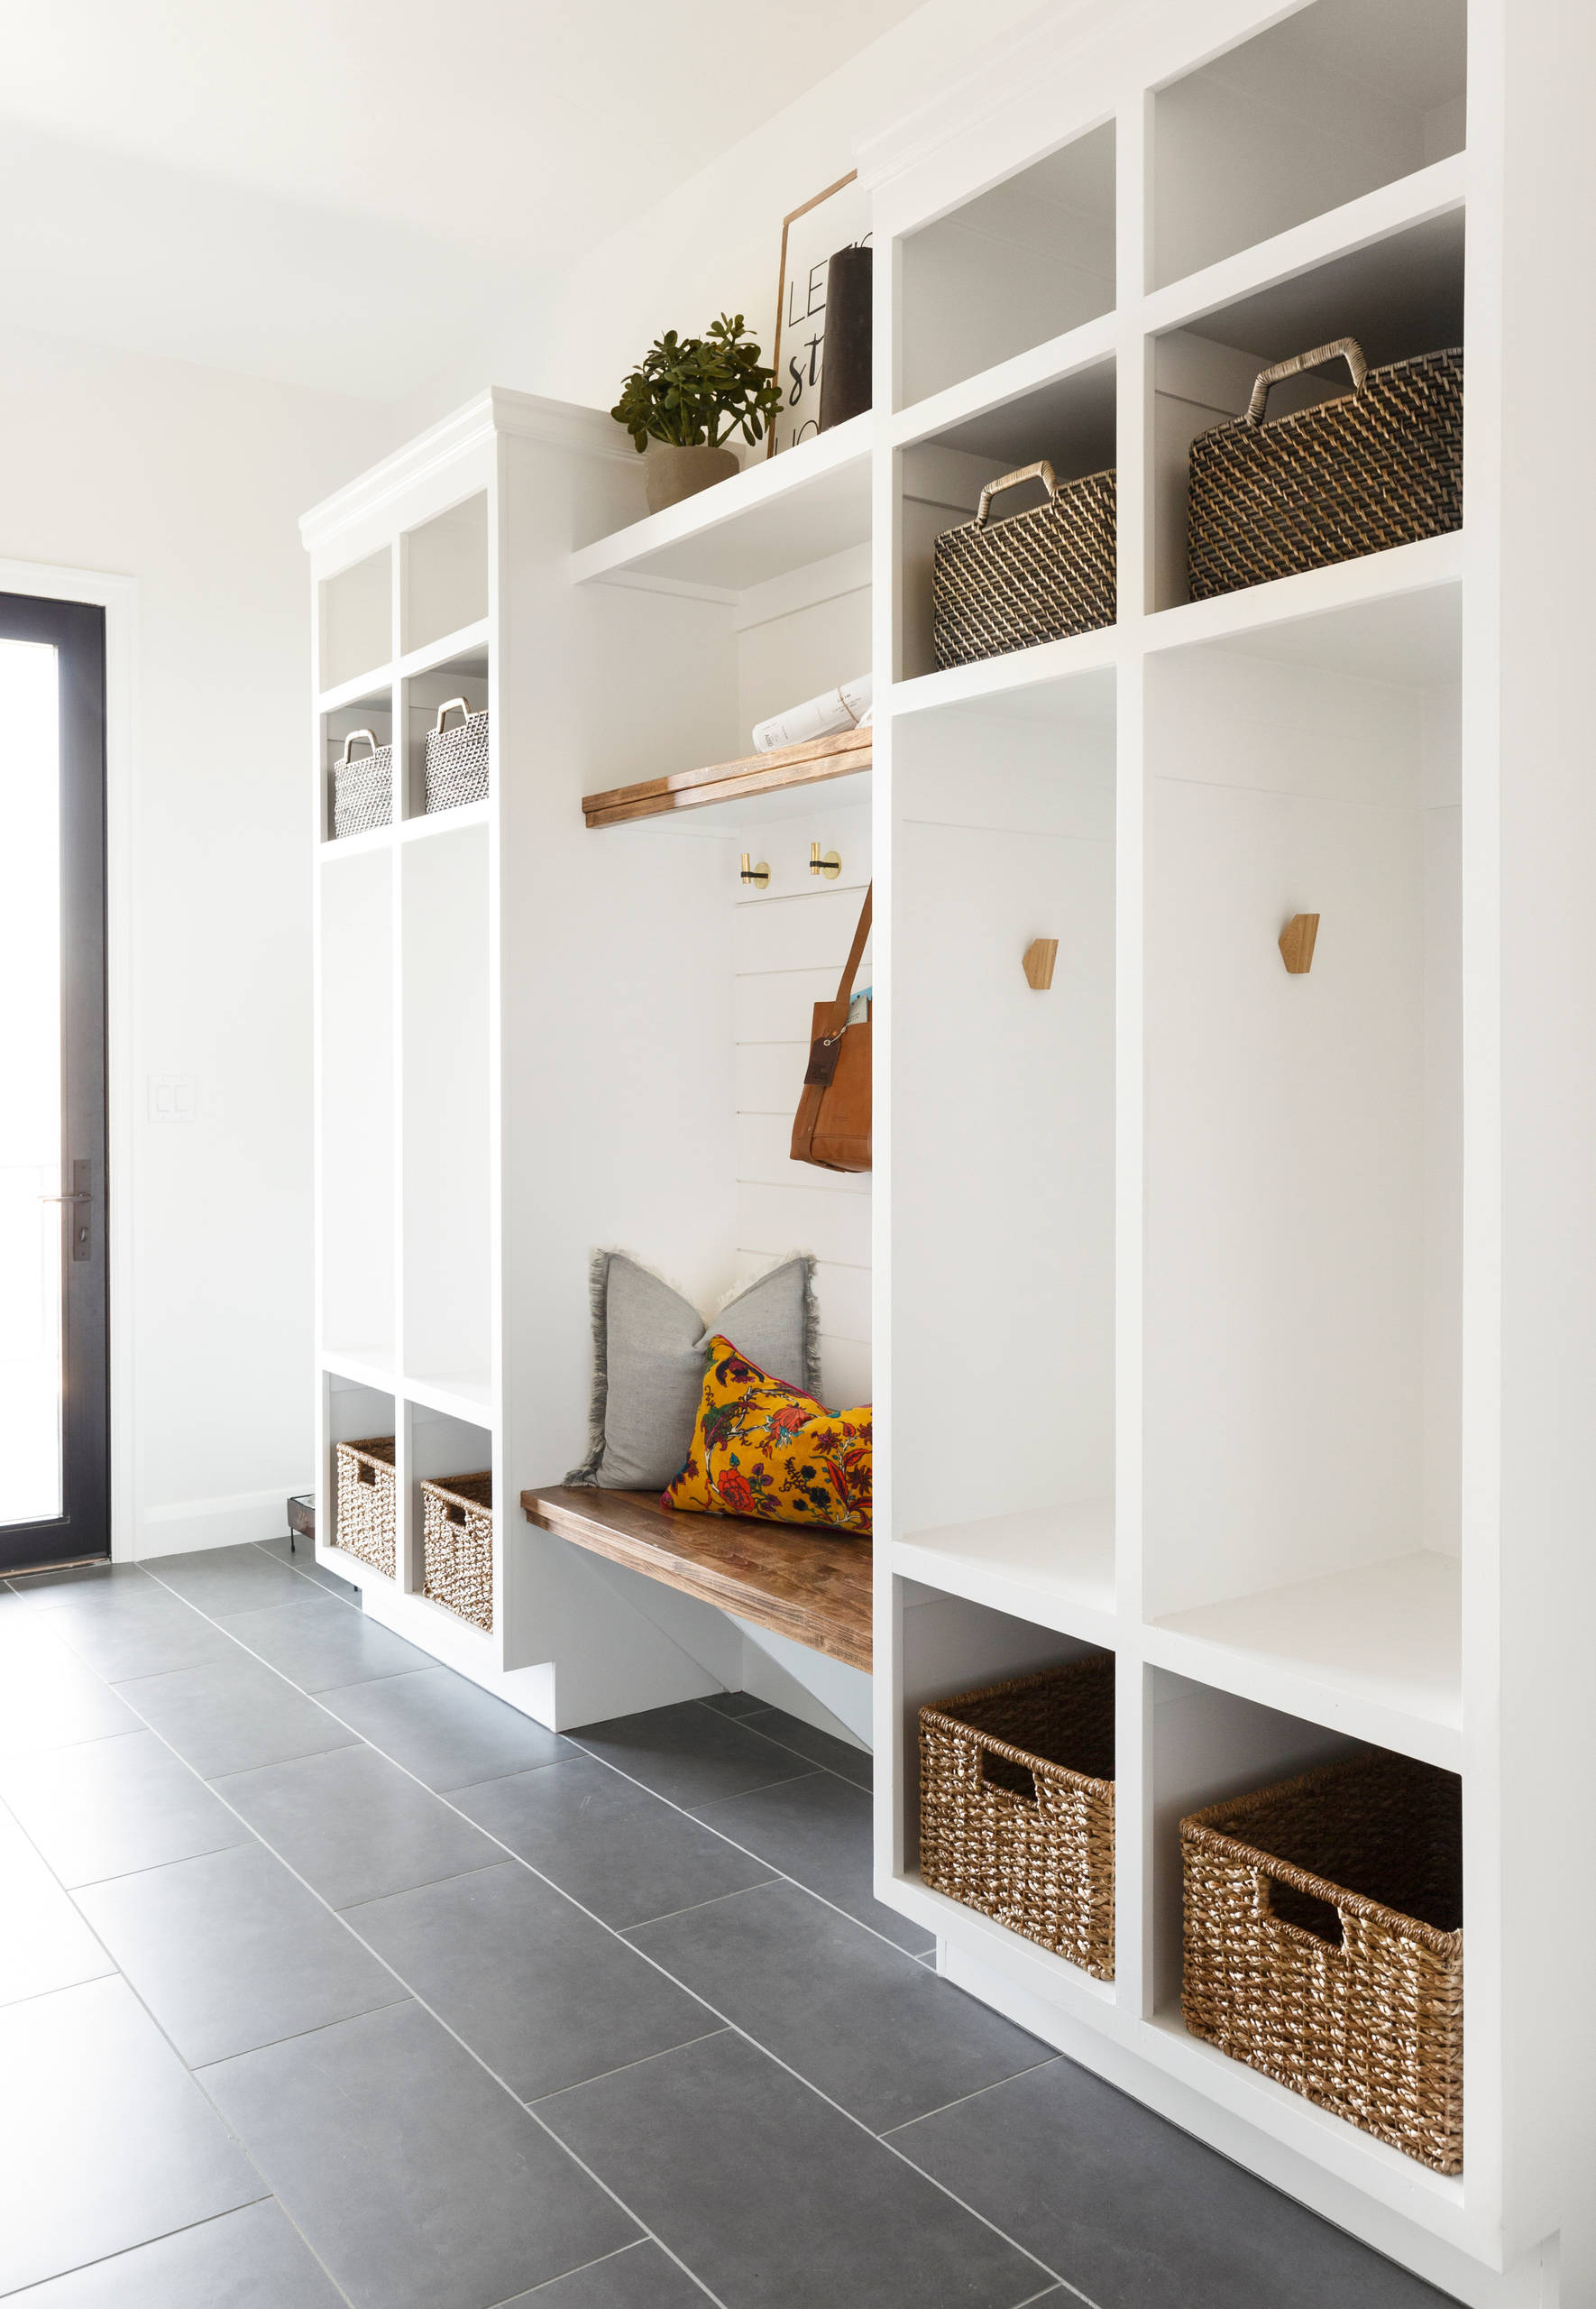 75 Beautiful Ceramic Tile Entryway Pictures & Ideas - January, 2021 | Houzz